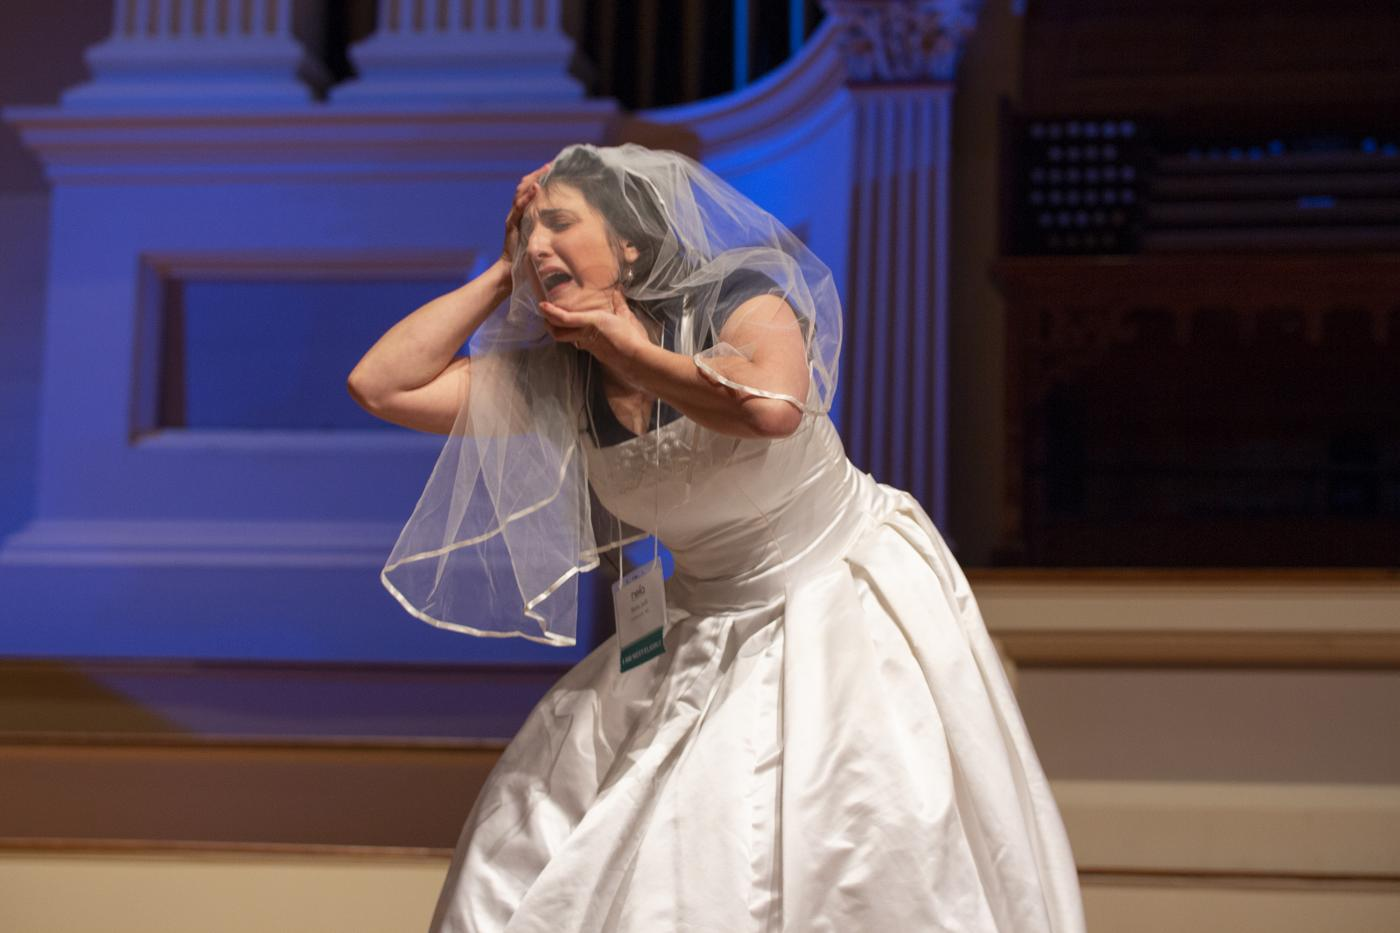 "artist Sara Juli performs an excerpt of her new work (in development) titled ""Burnt Out Wife"" at the 2018 Idea Swap on the Great Hall stage at Mechanics Hall. She wears a wedding dress over her clothes. A wedding veil covers her face and a lanyard with a name tag hangs around her neck. Sara is slightly bent forward, holding the top of her head with her right hand and holding her left hand under her chin. She appears to cry with her eyes closed and mouth open. Blue stage lighting is seen behind her on stage."